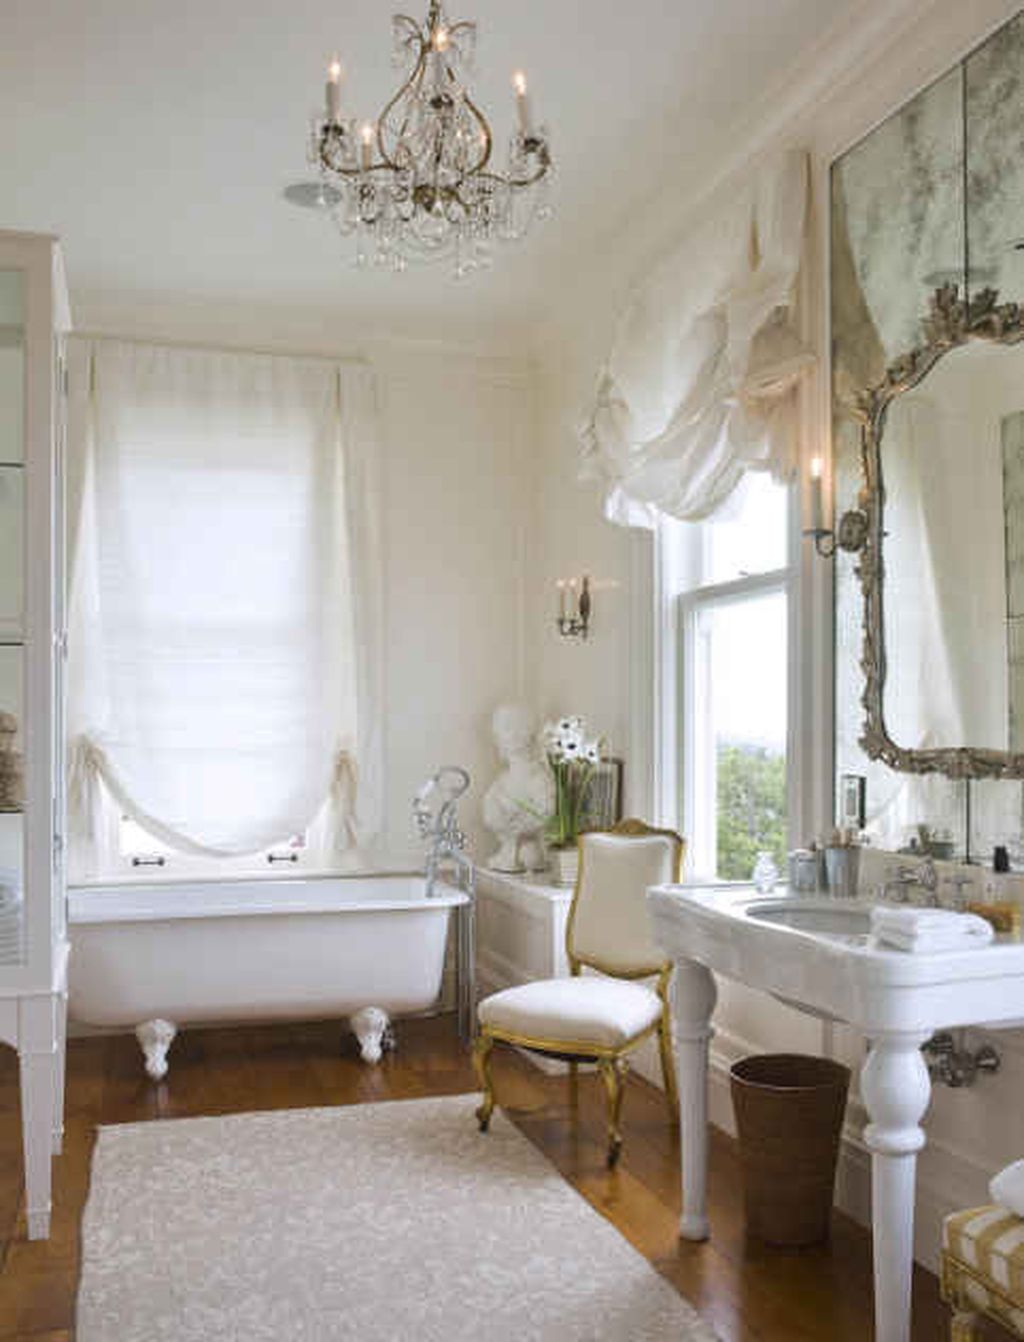 Romantic and elegant bathroom design ideas with chandeliers 14 homedecorish Romantic bathroom design ideas